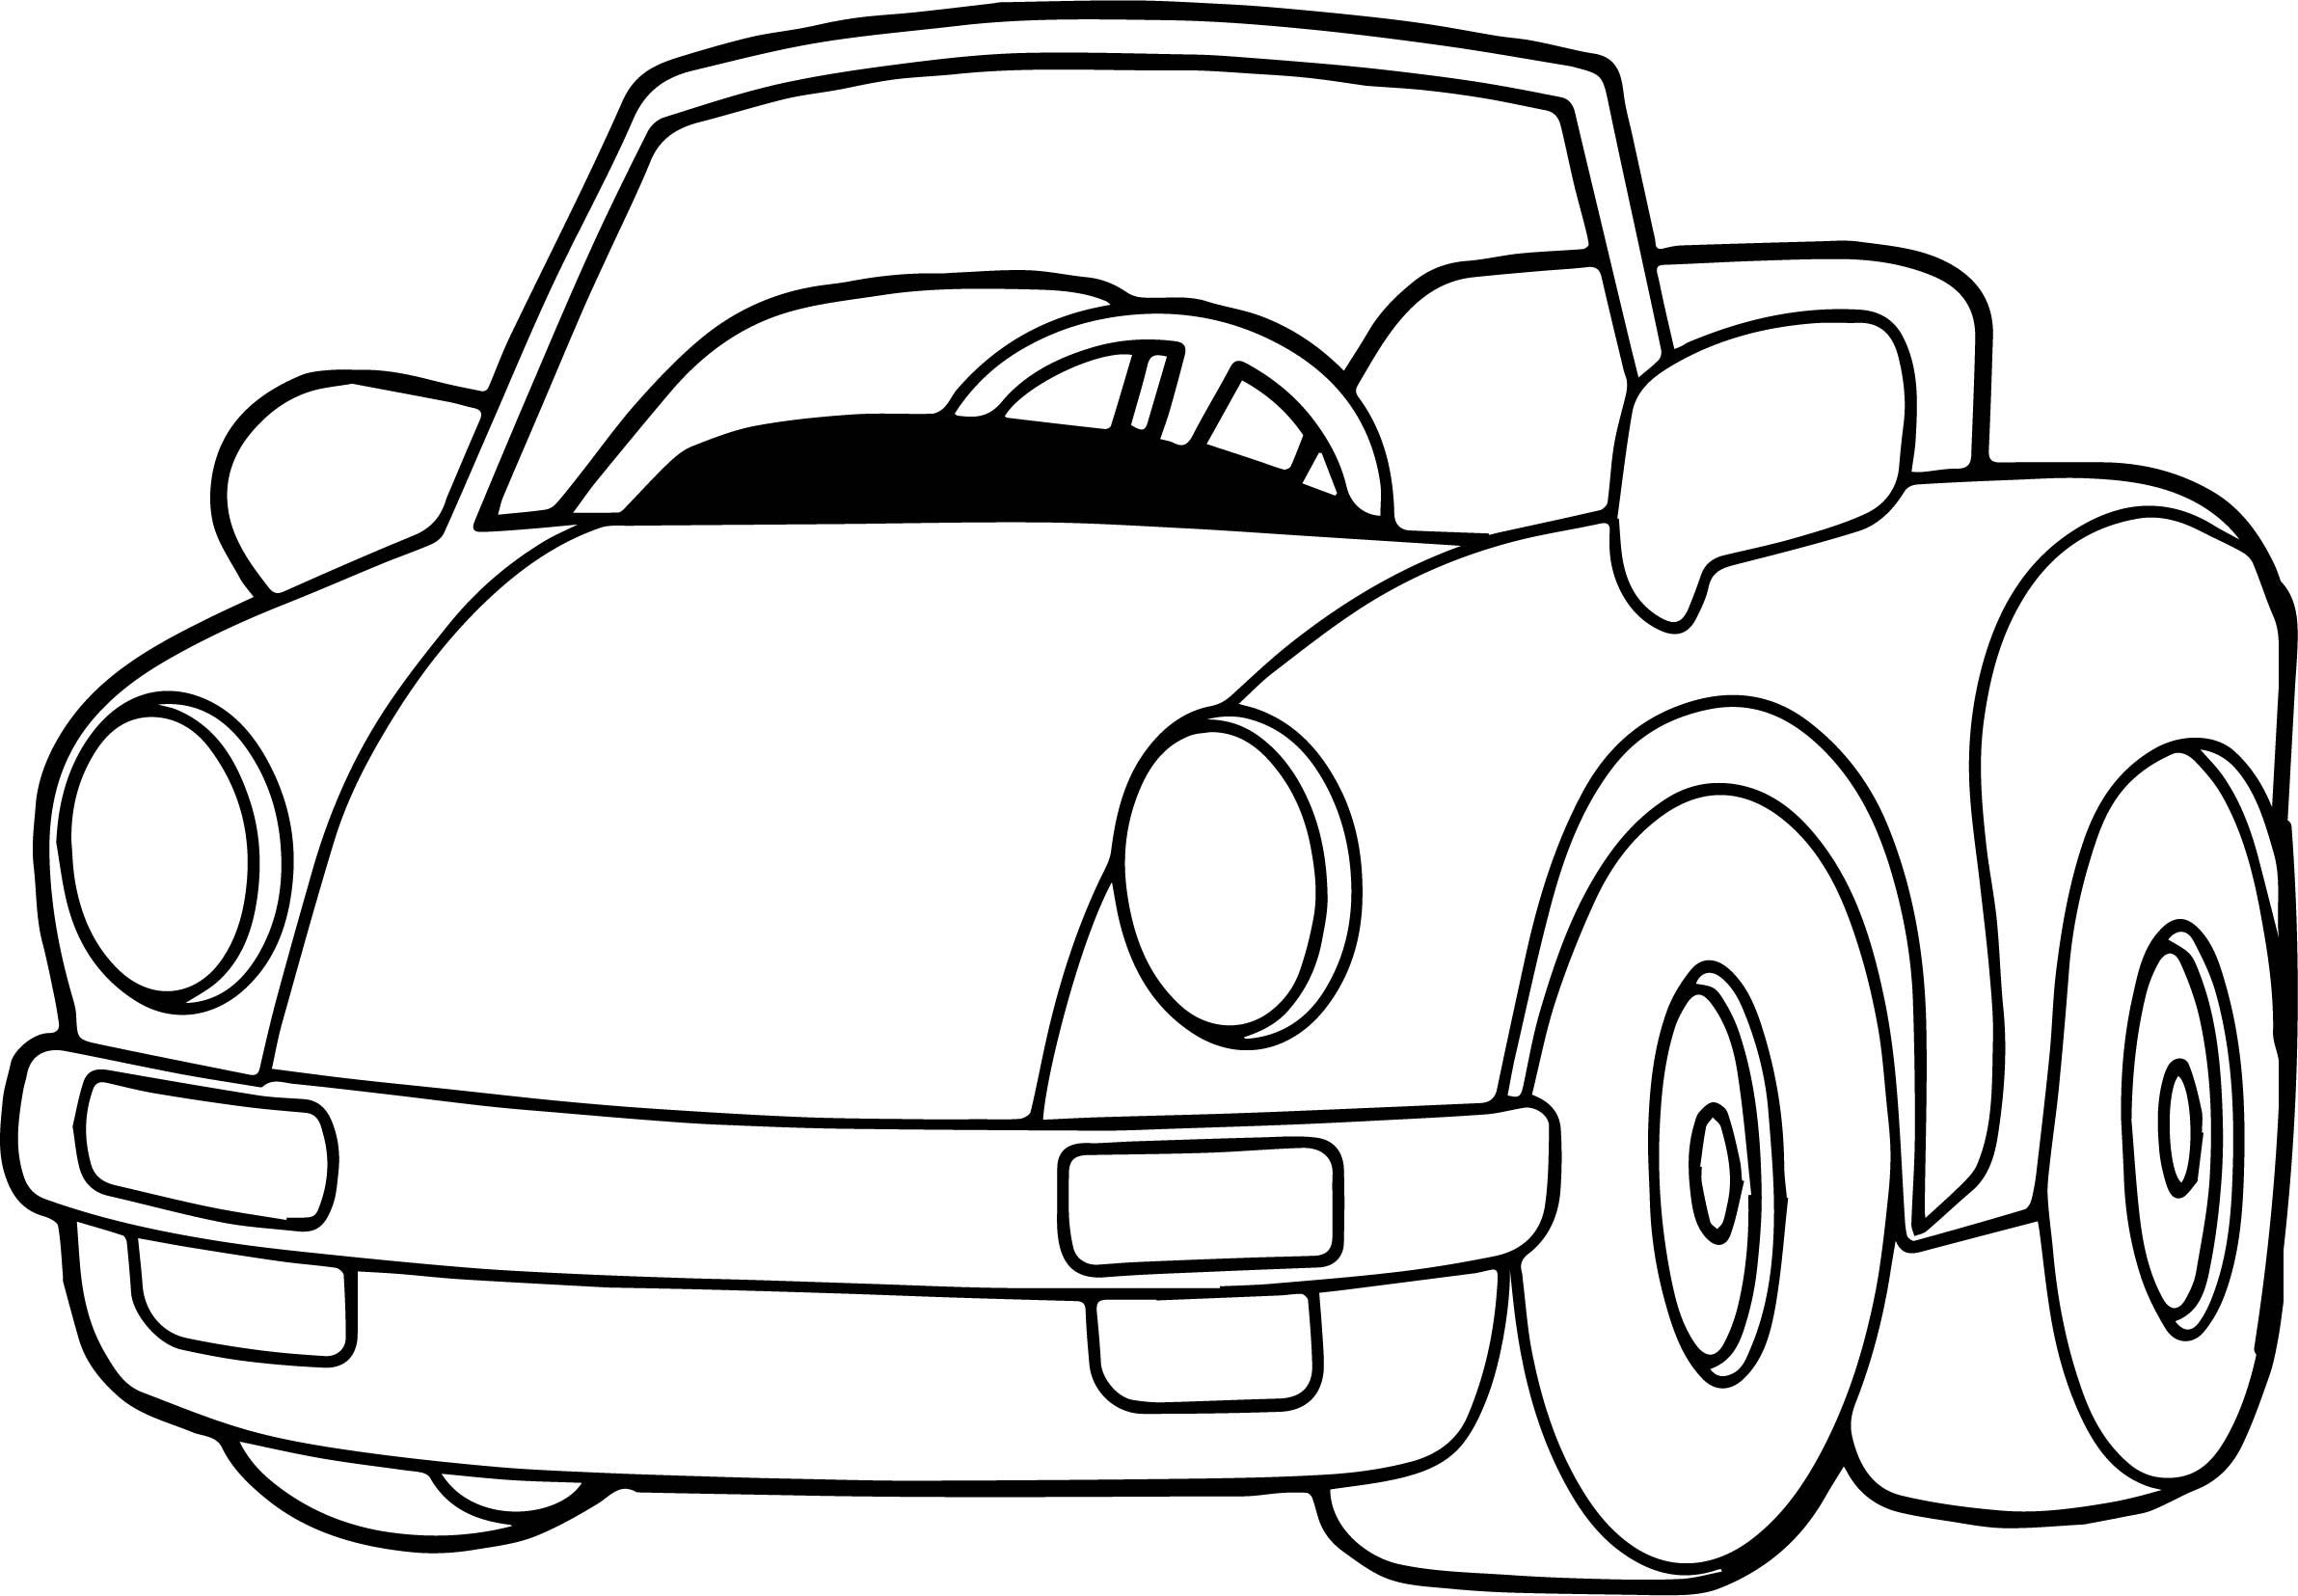 Nice Speed Toy Car Coloring Page Cars Coloring Pages Coloring Pages Bible Coloring Pages